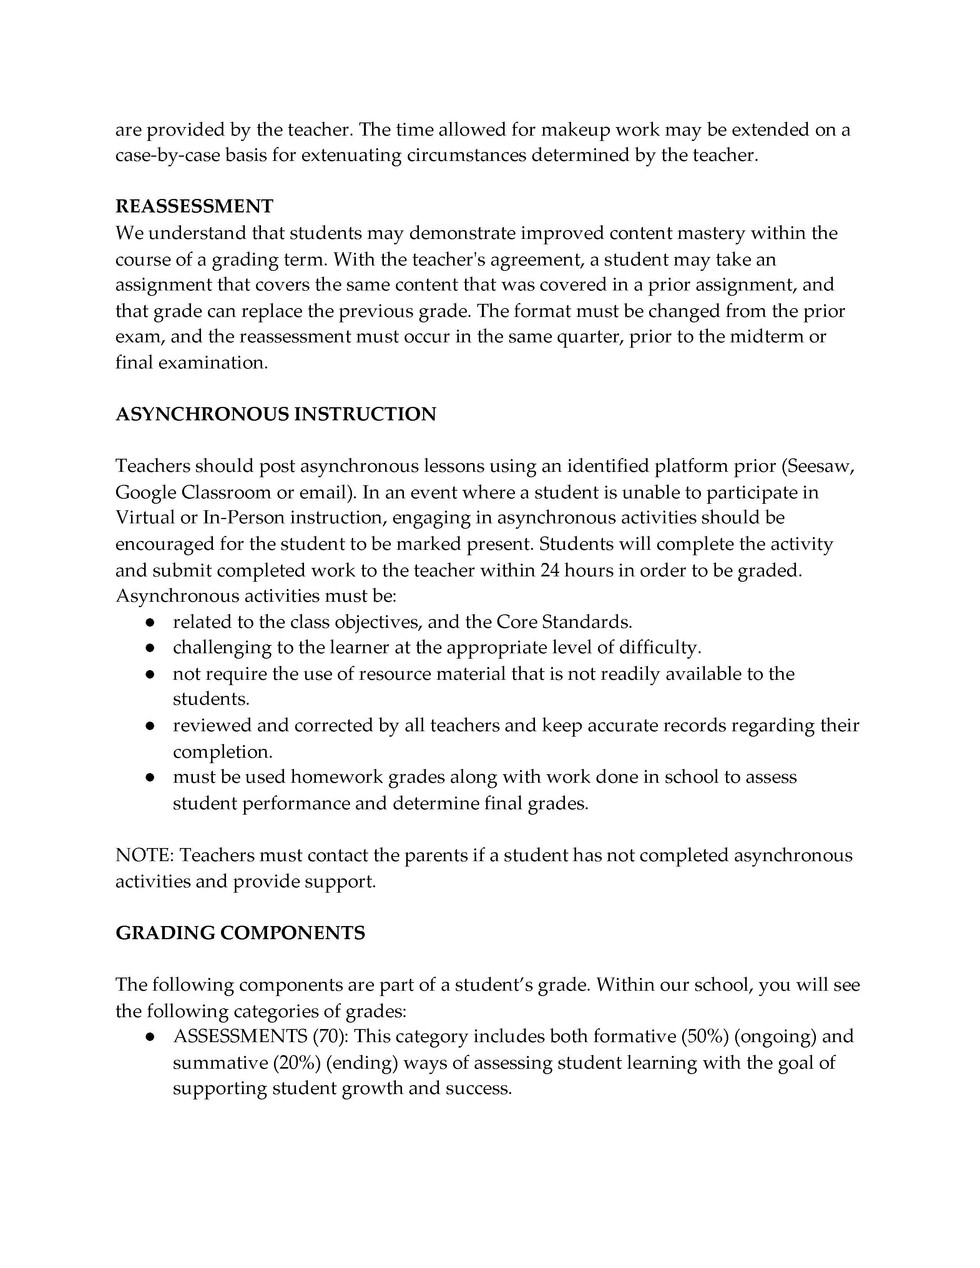 SY 20-21 Baer Grading Policy_Page_3.jpg